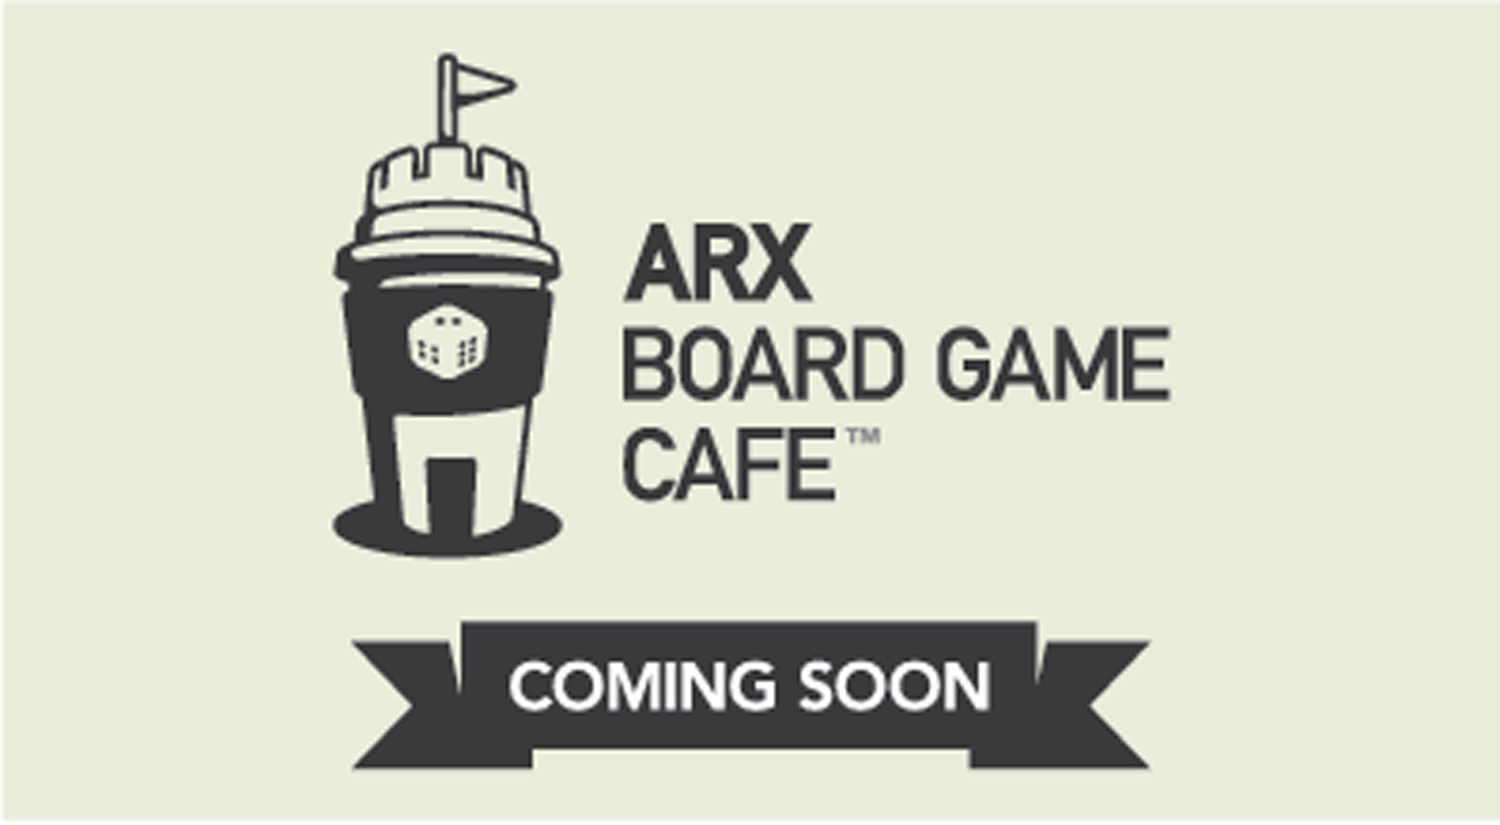 Arx Boardgame Cafe